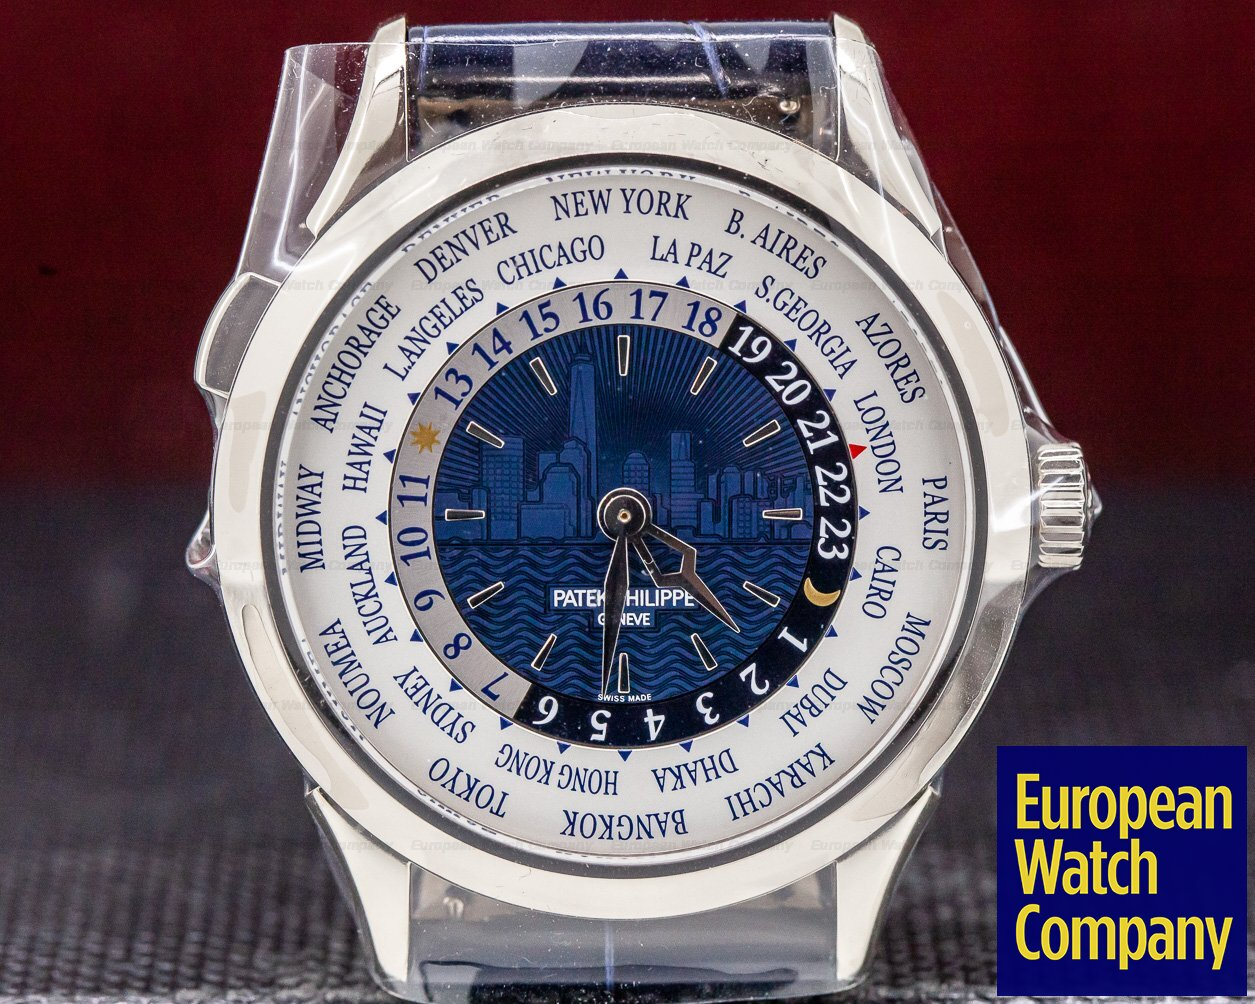 Patek Philippe 5230G New York NEW YORK World Time 2017 Limited Edition UNWORN